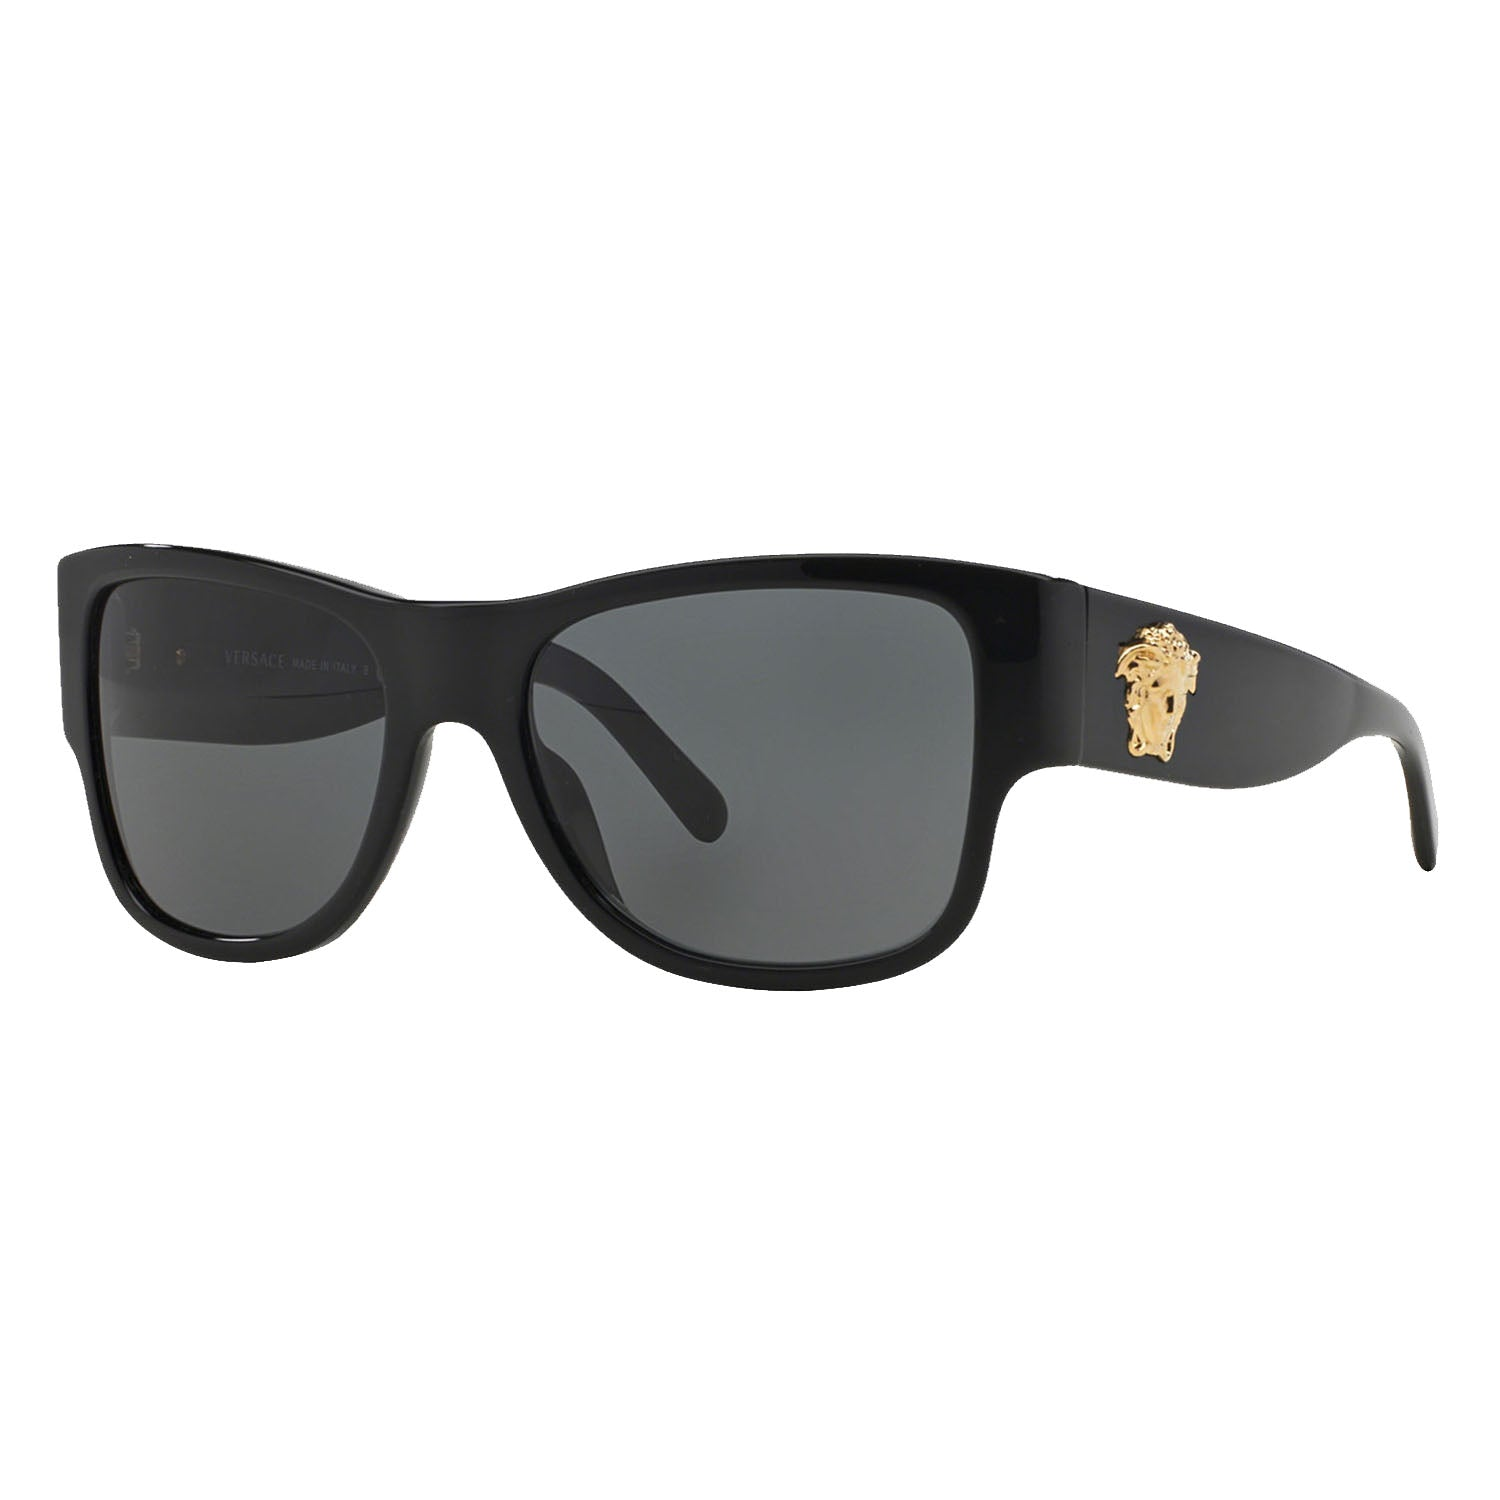 Versace Medusa Head Sunglasses